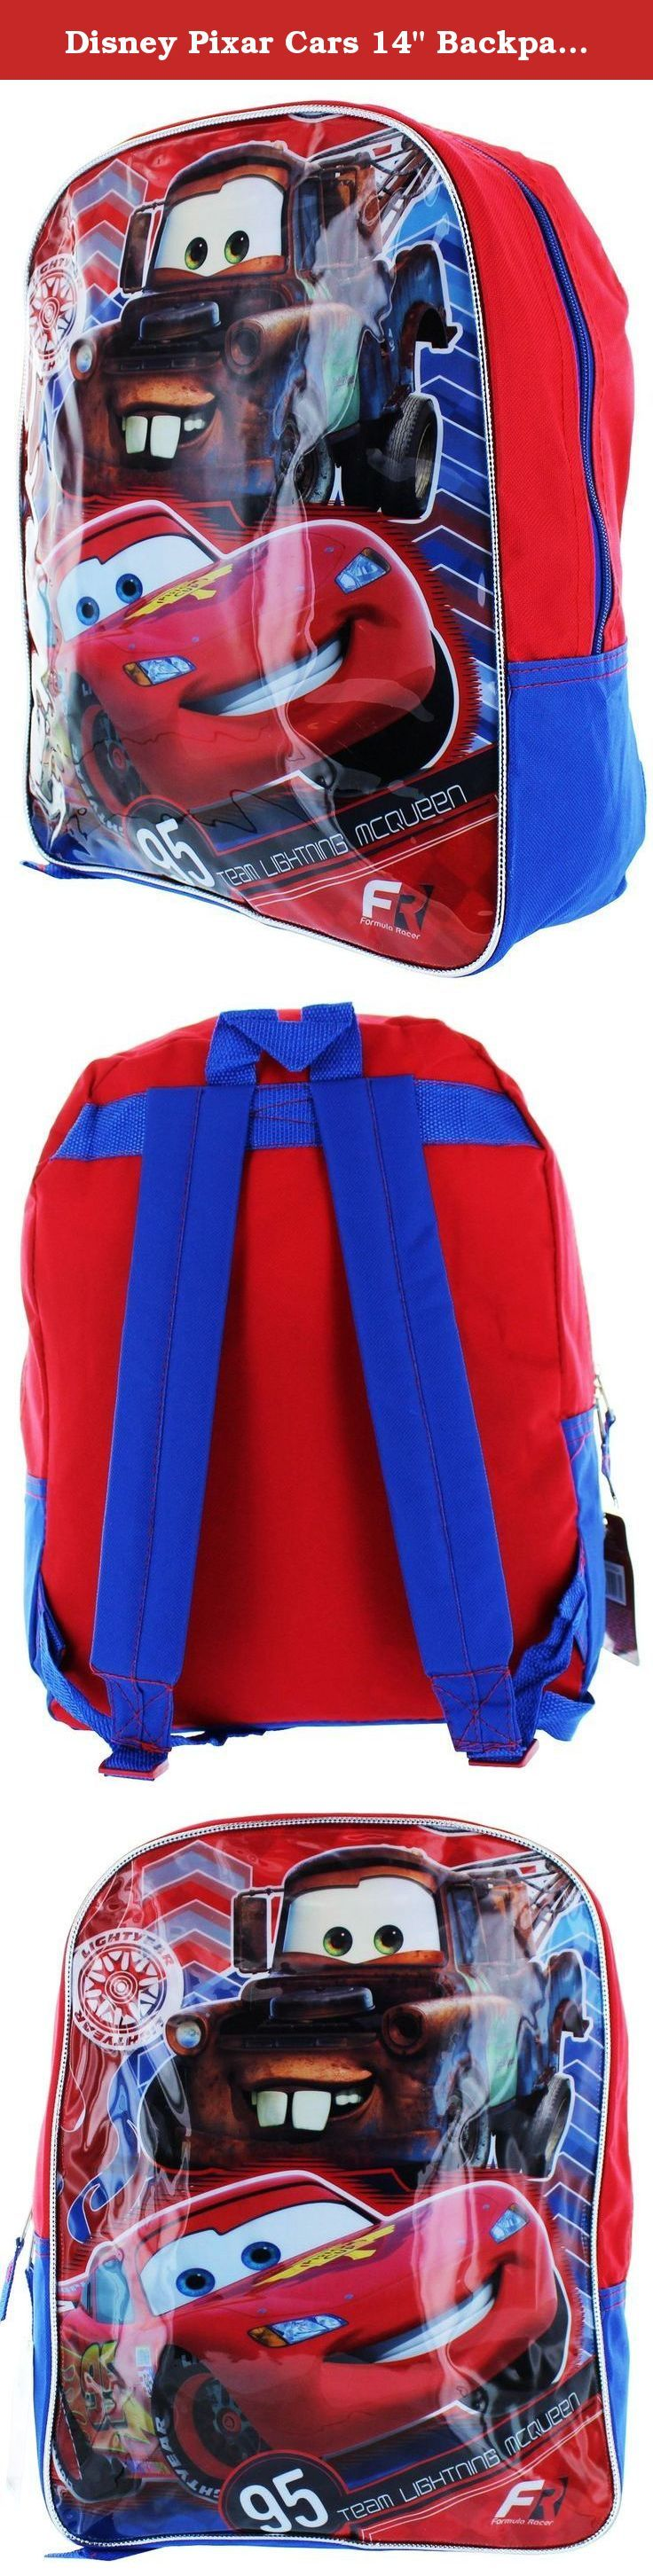 "Disney Pixar Cars 14"" Backpack - 'Formula Racer'. A 15""high x12"" wide x5"" deep backpack. Backpack has characters from Disney-Pixar cars movies."